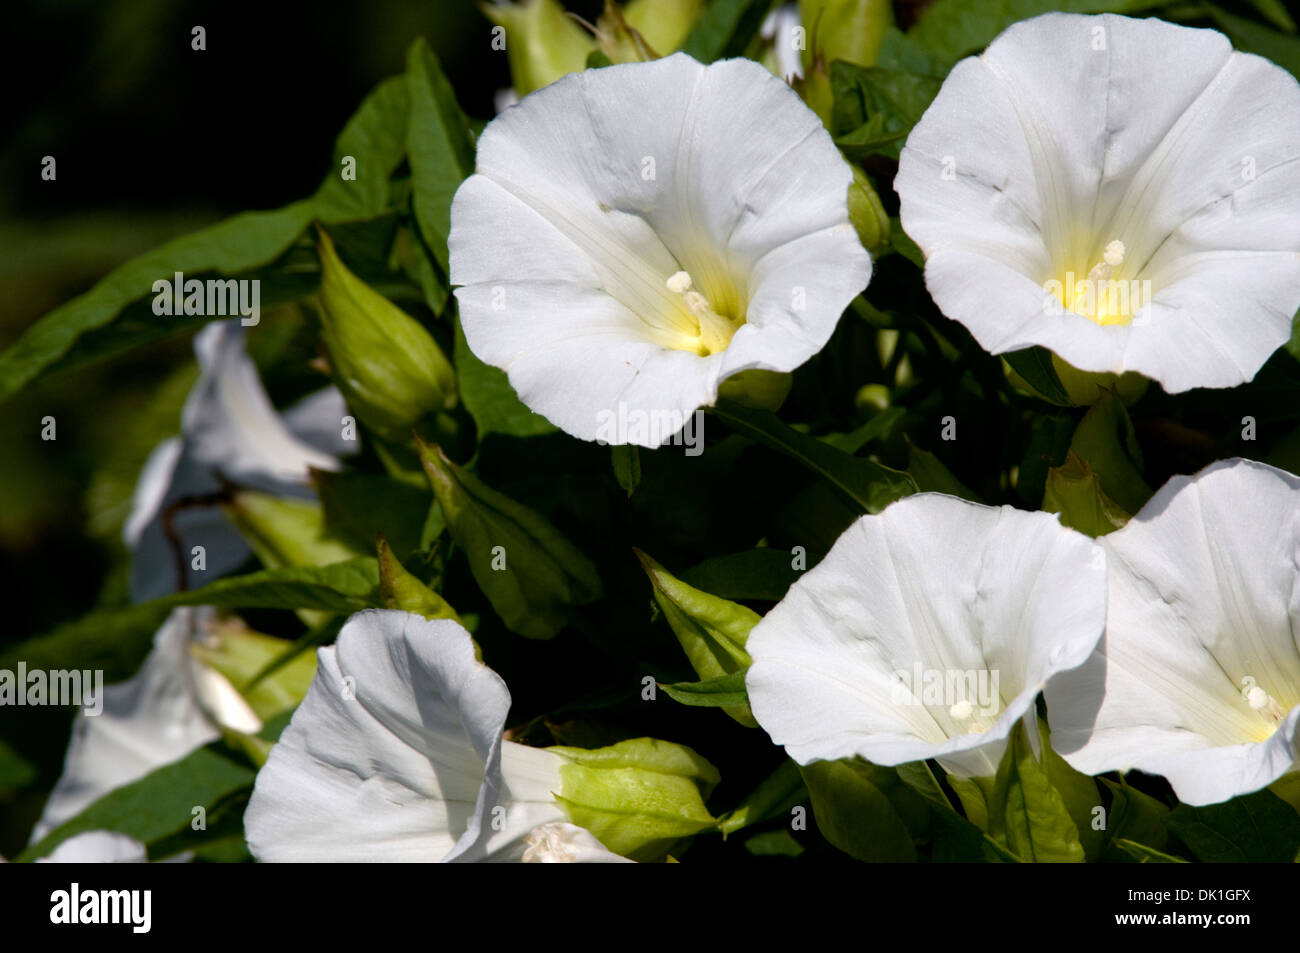 White morning glories open in the morning sunshine. - Stock Image